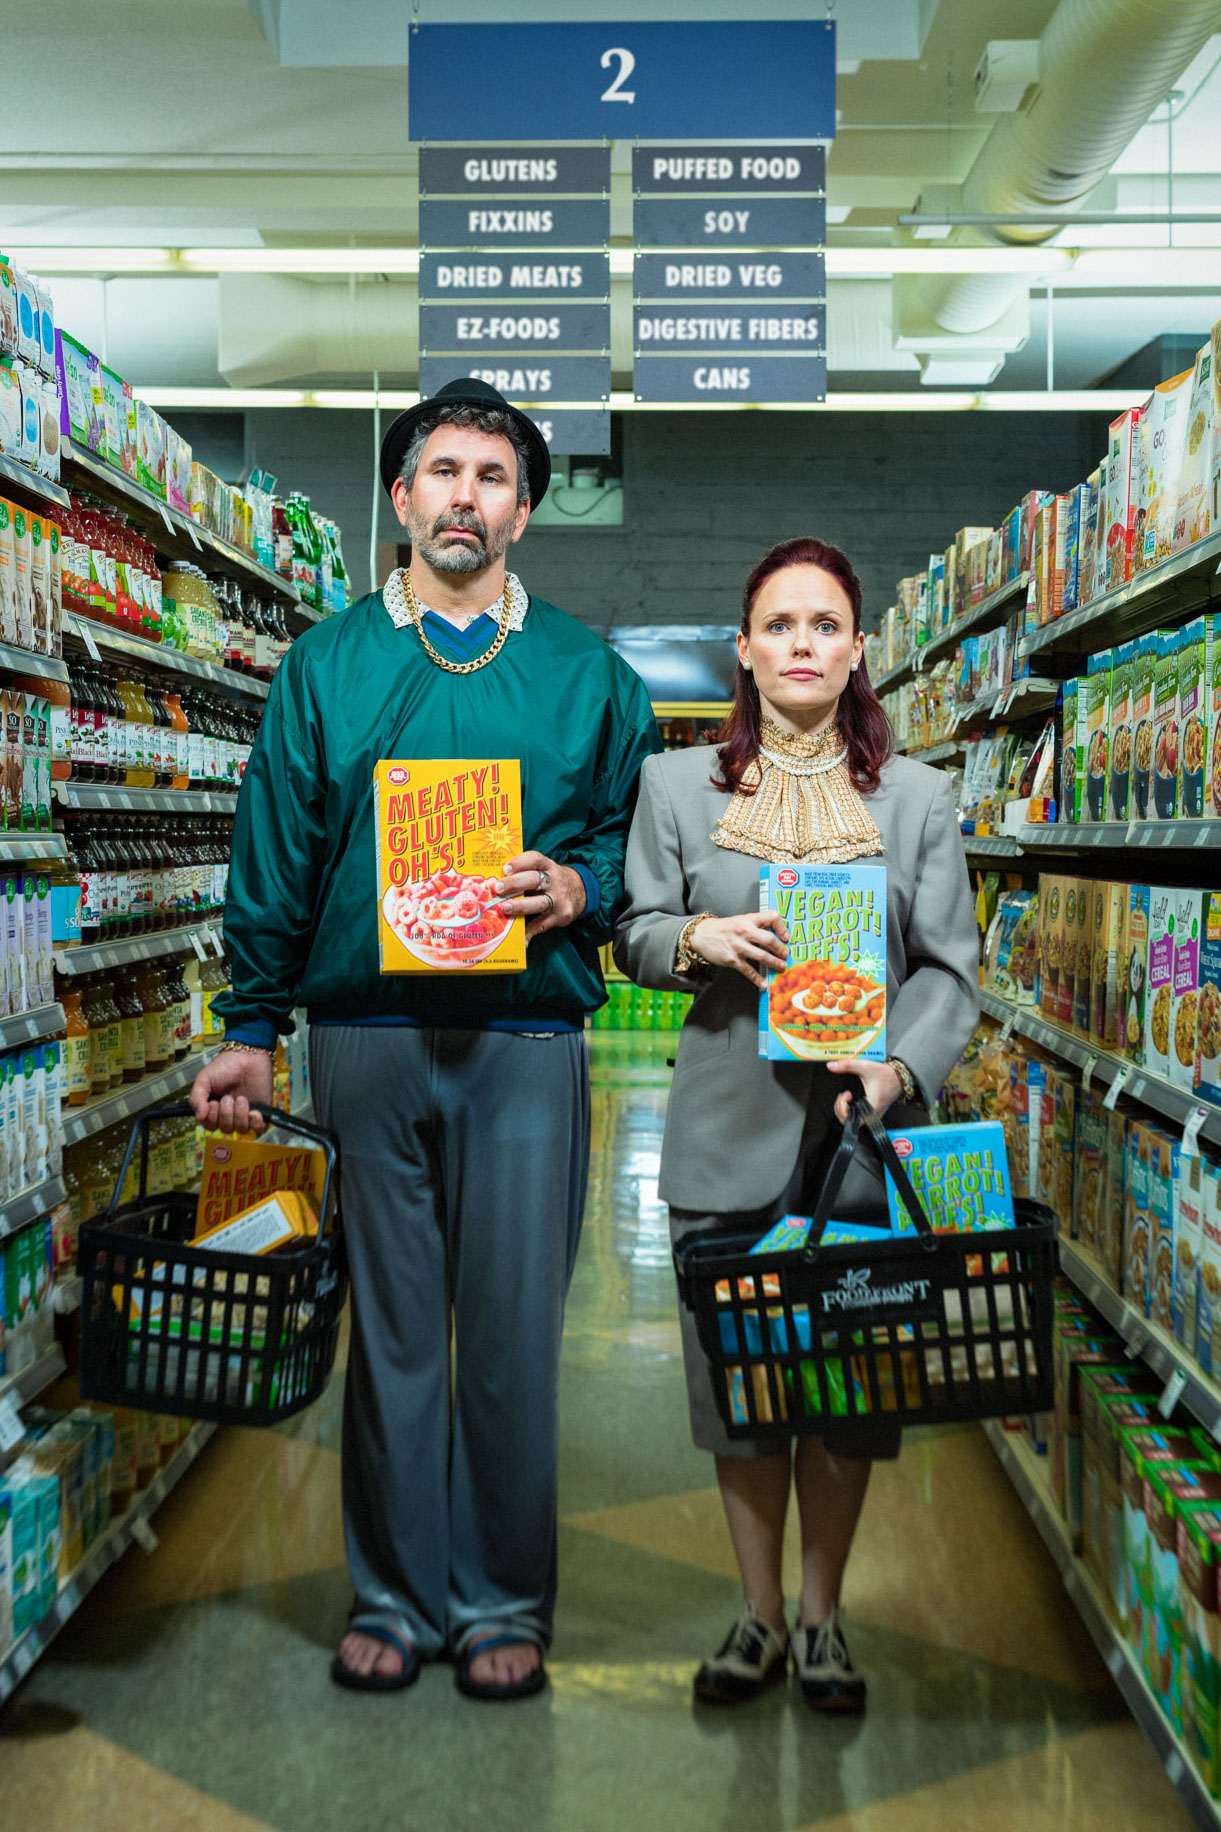 Entertainment portrait of Drunk History actor Craig Cackowski and wife Carla Cackowski for Orange Tuxedo improv. Poster art of the couple standing in aisle 2 of a grocery store holding boxes of cereal. Photo by Andy Batt